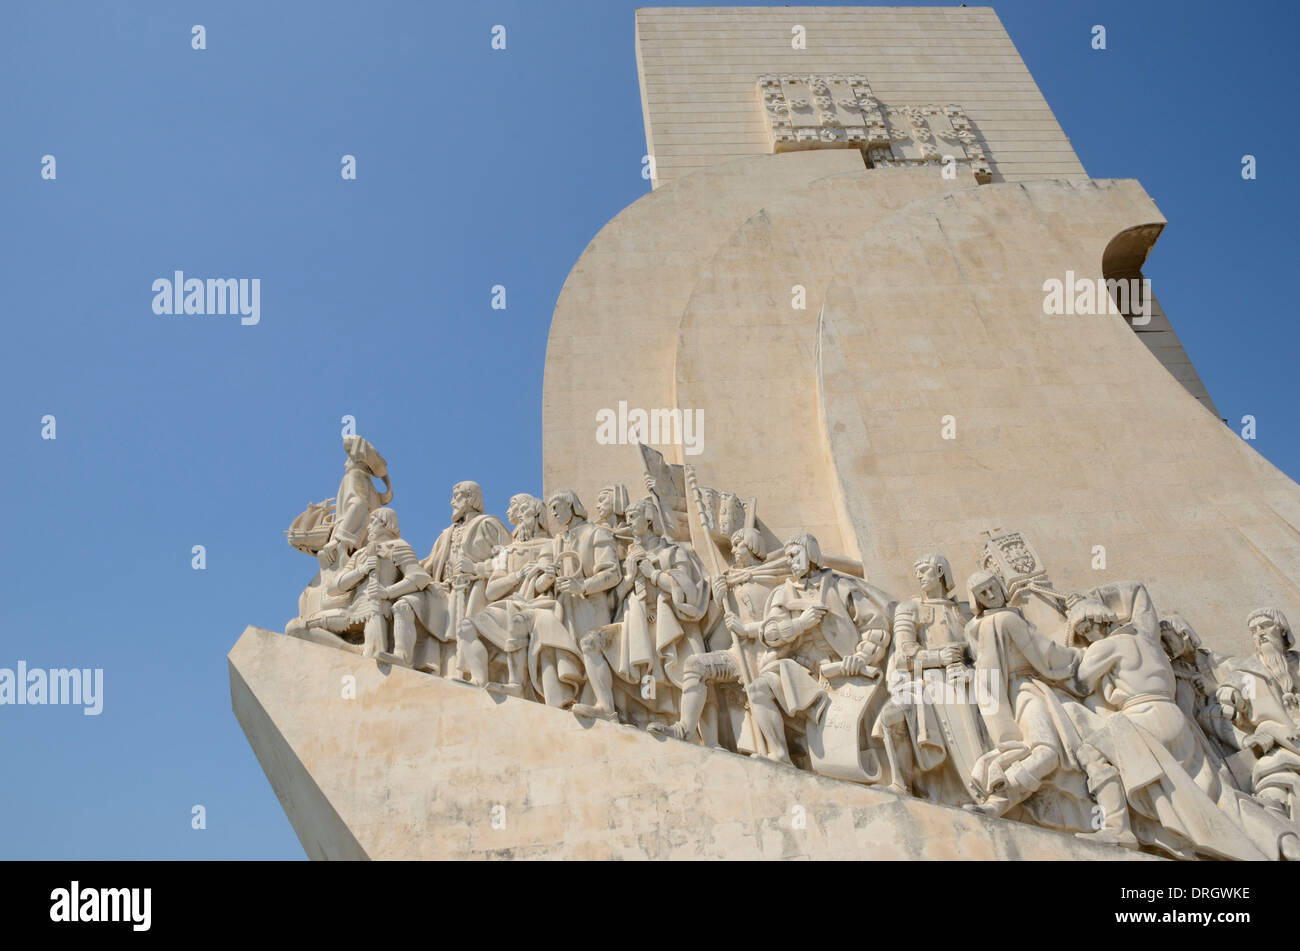 Monument to the Discoveries is a monument on the northern bank of the Tagus River estuary, in the civil parish of Belem, Lisbon. - Stock Image